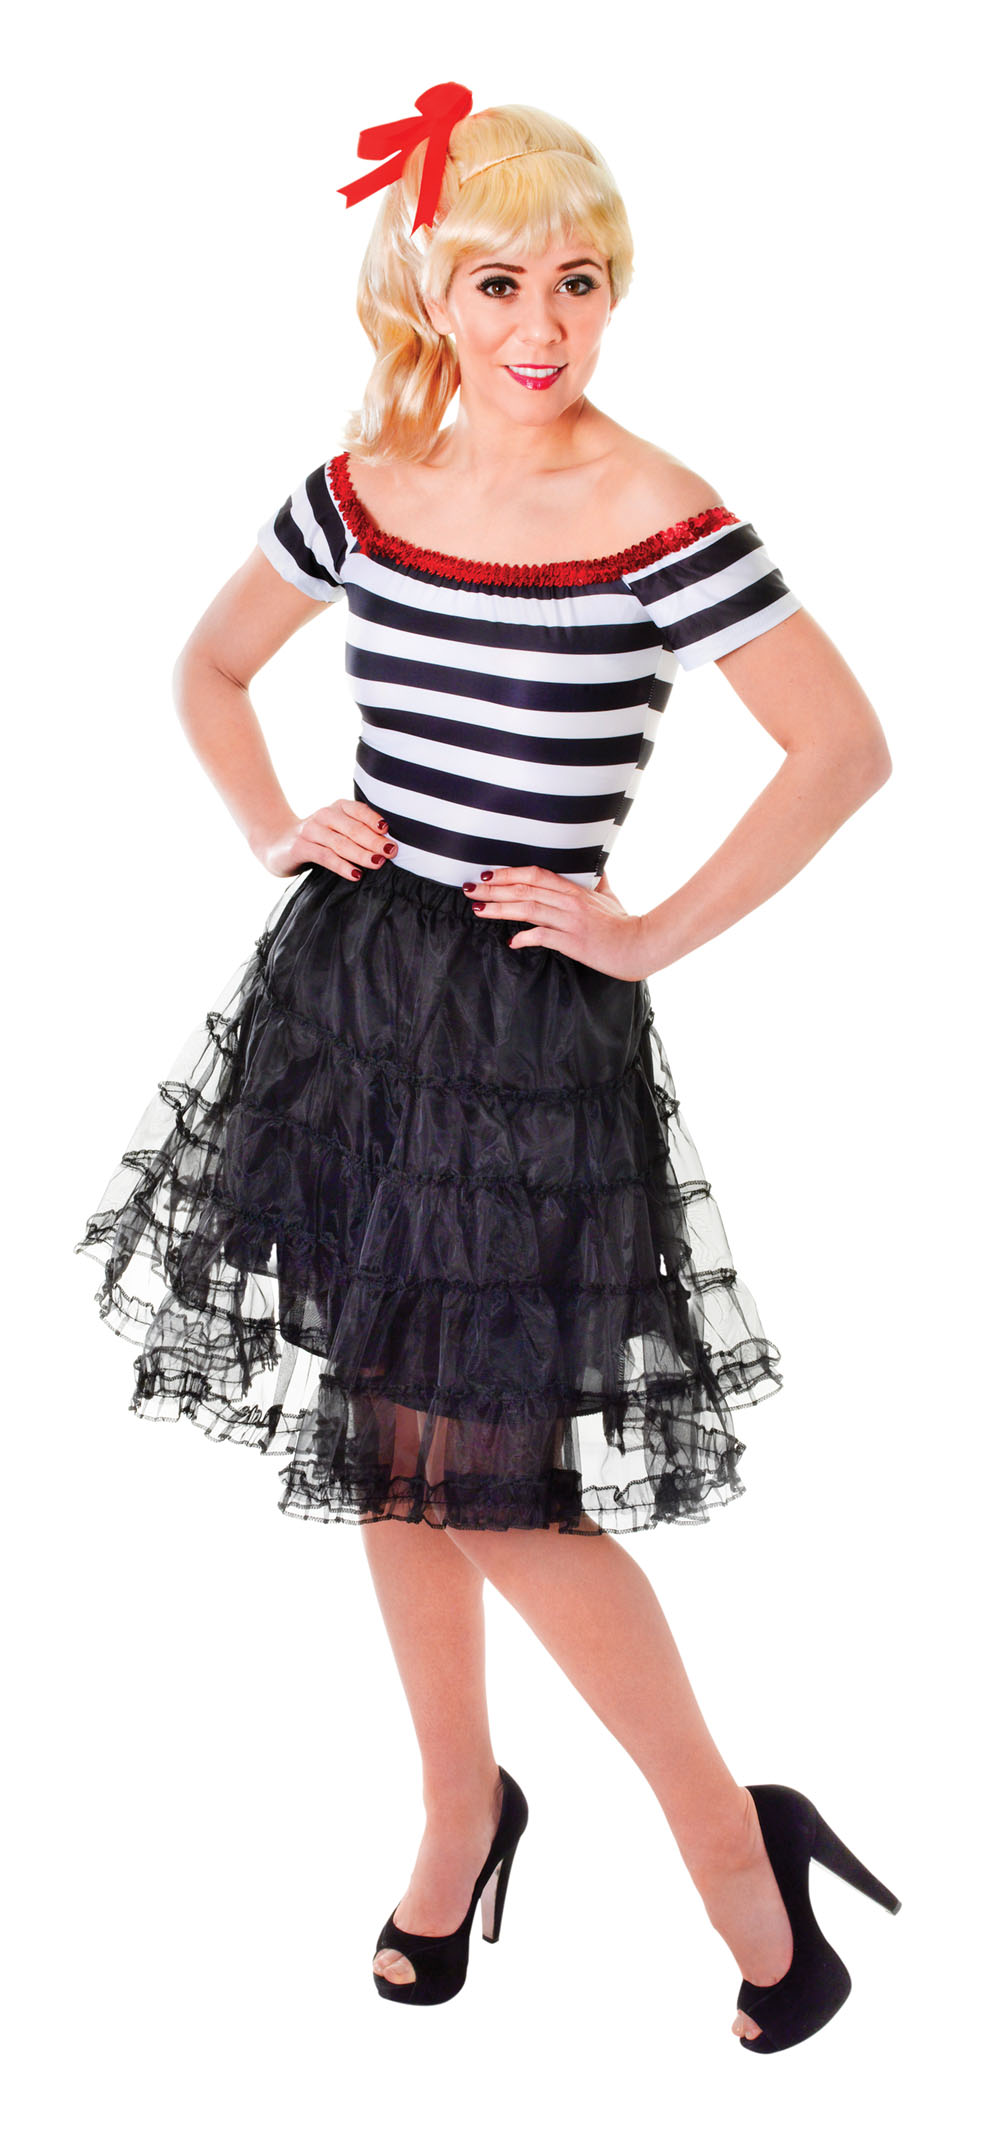 Ladies Black Ruffled Underskirt Fancy Dress Costume Volume Skirt Outfit UK 10-14